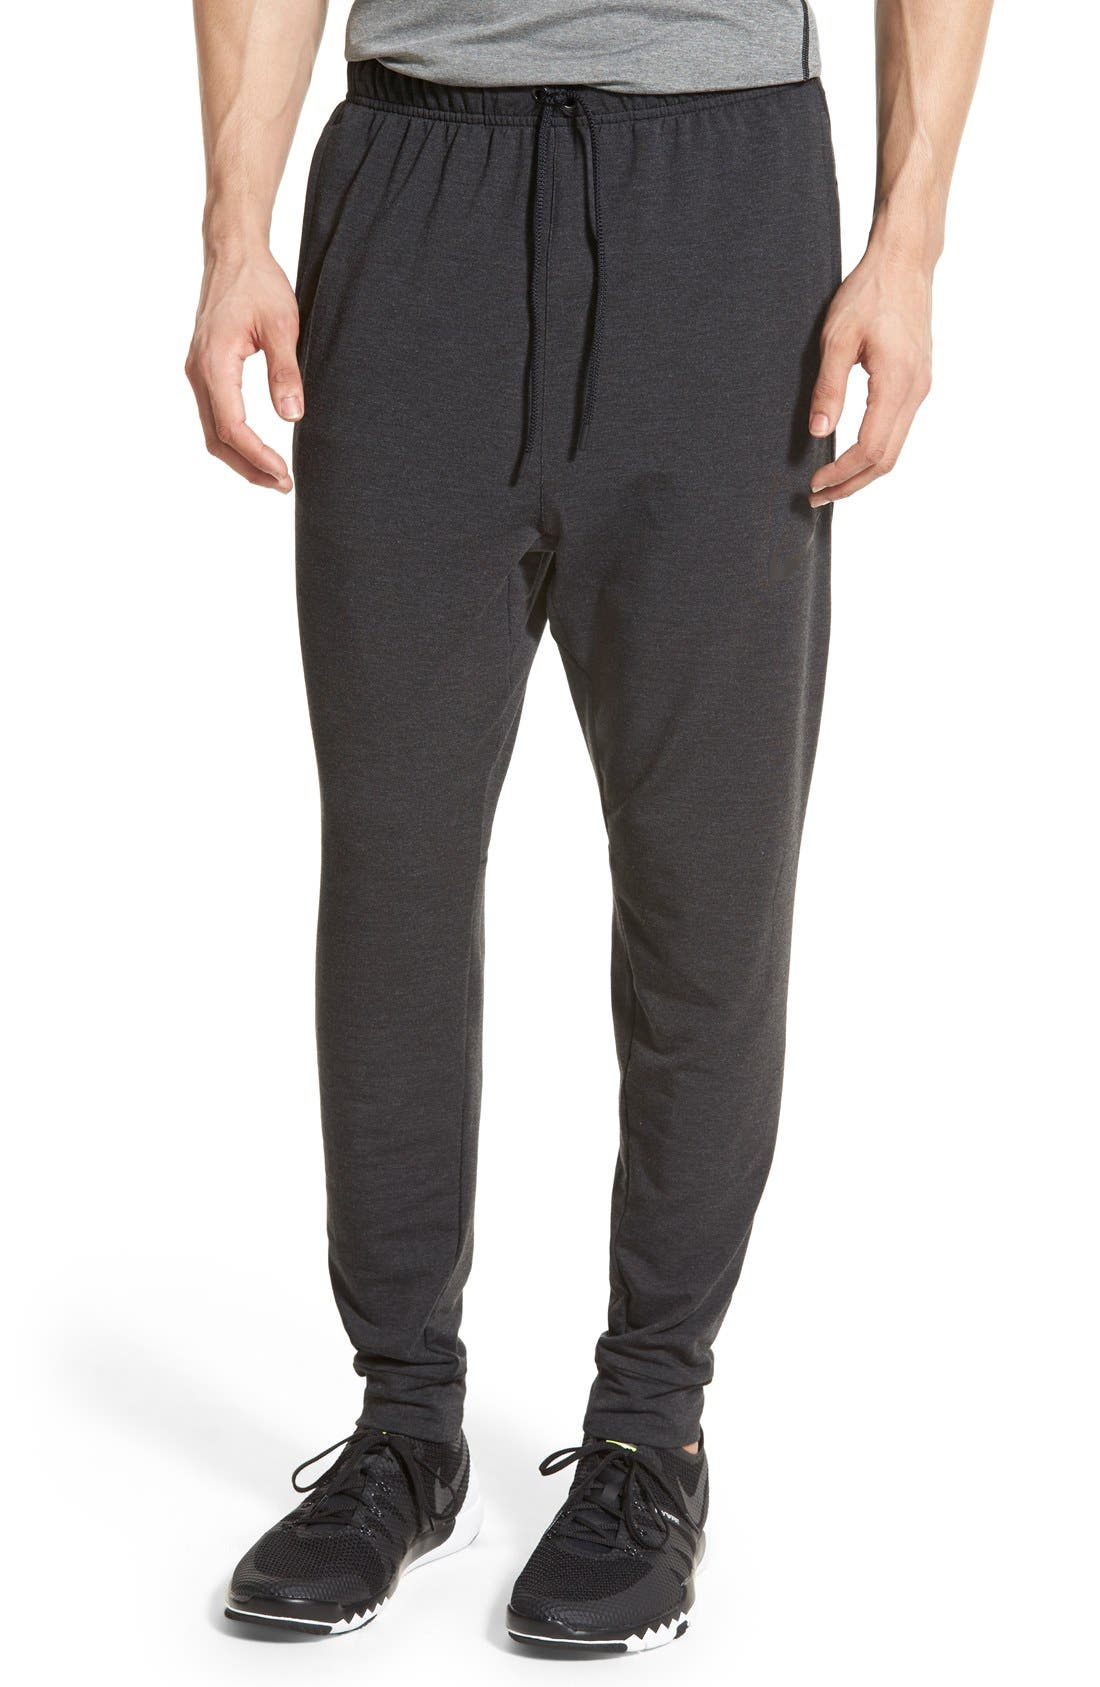 Nike Dri-FIT Fleece Training Pants